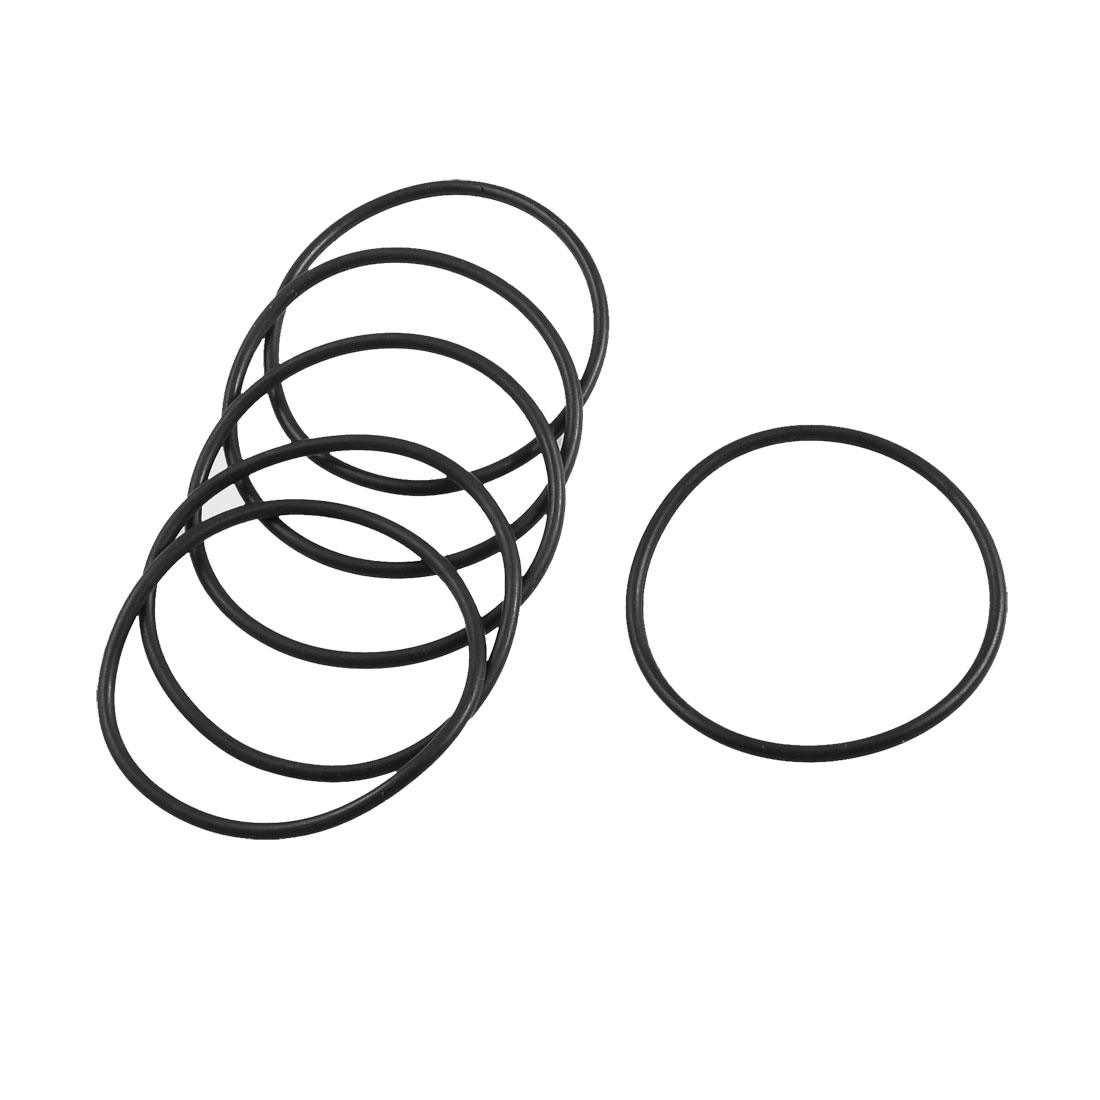 Unique Bargains 5 x 55mm External Dia 2.65mm Thickness Industrial Rubber Oil Seal O Ring Gaskets